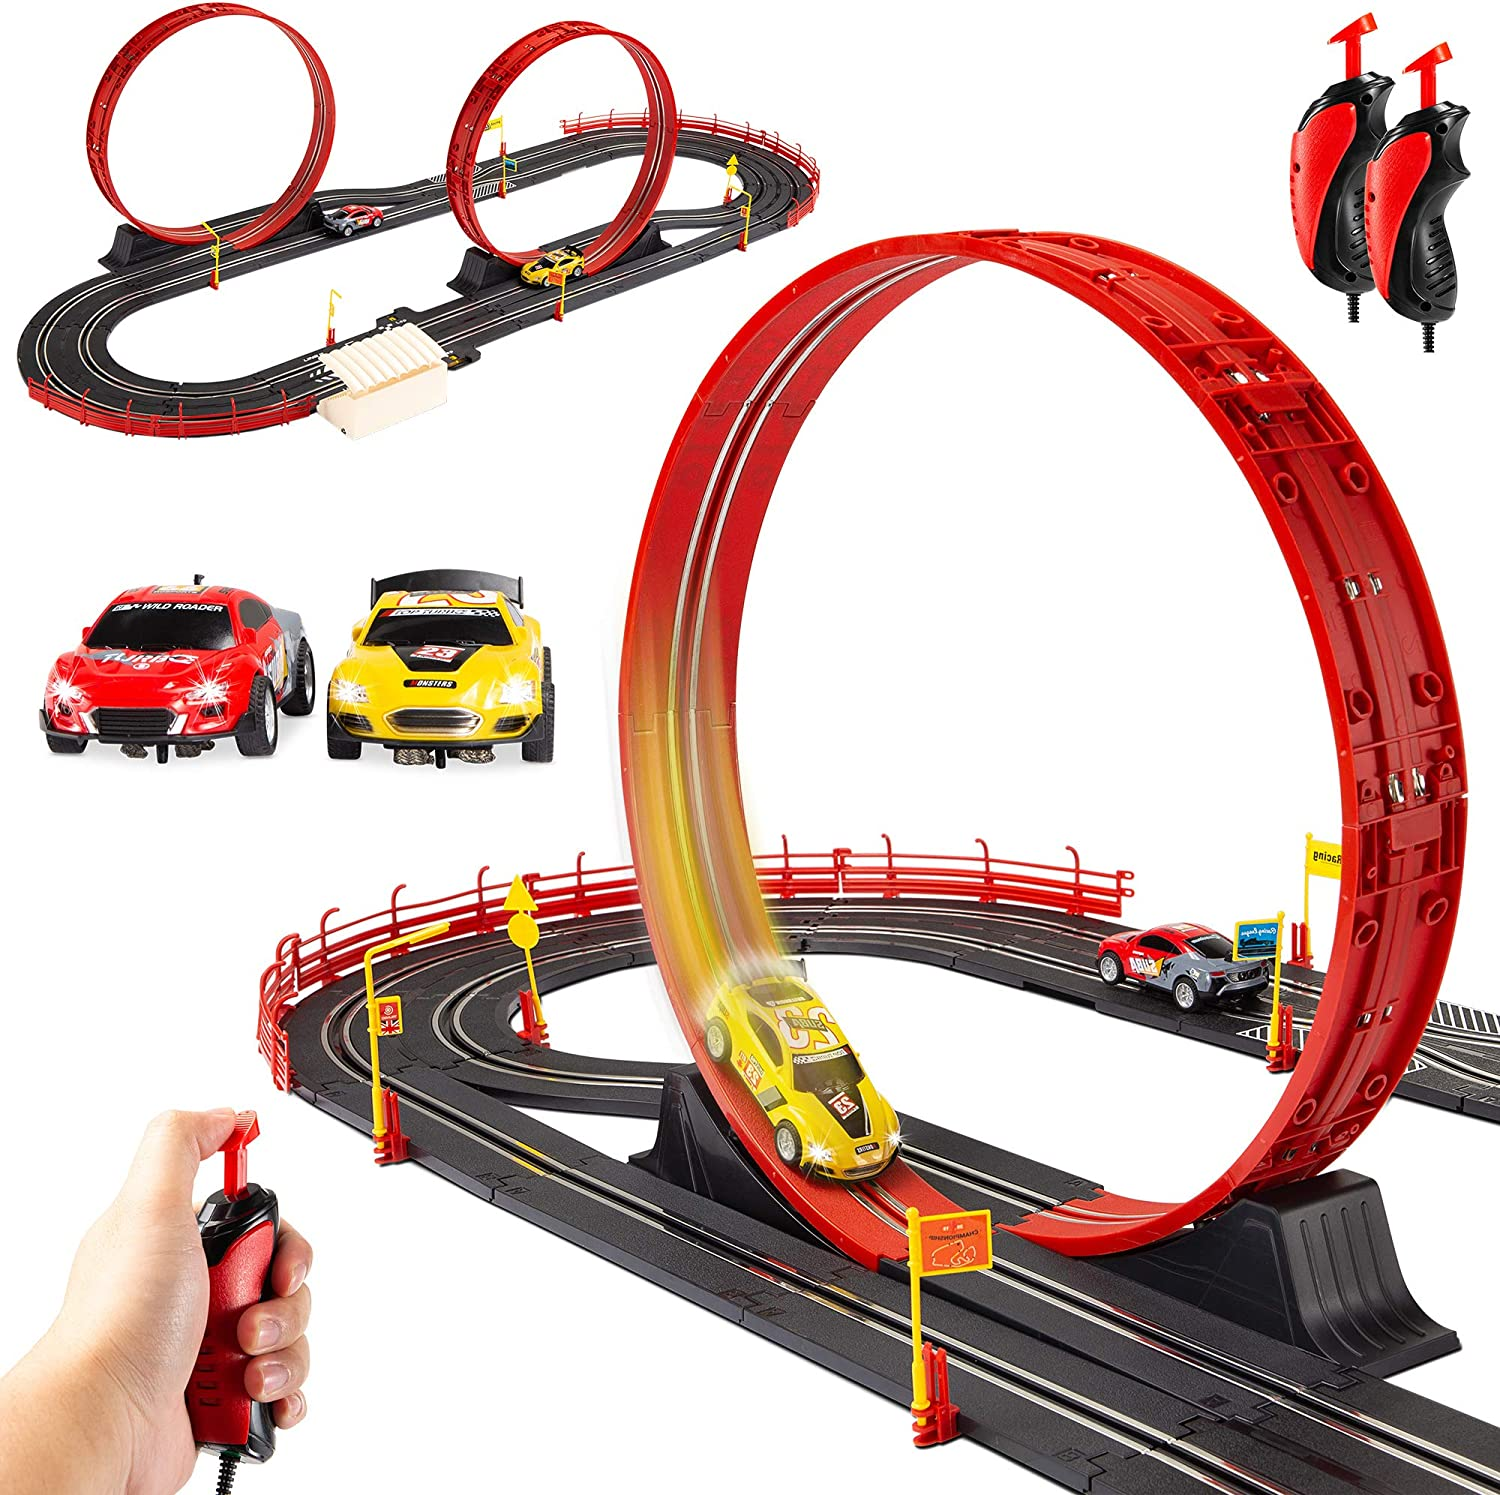 Amazon.com: Best Choice Products Electric Slot Car Race Track Set Boy Kids  Toy w/ 2 Battery Operated Cars, 2 Controllers, Customizable Courses,  360-Degree Loops, Working Lights: Toys & Games | Advanced Wiring Slot Car Track |  | Amazon